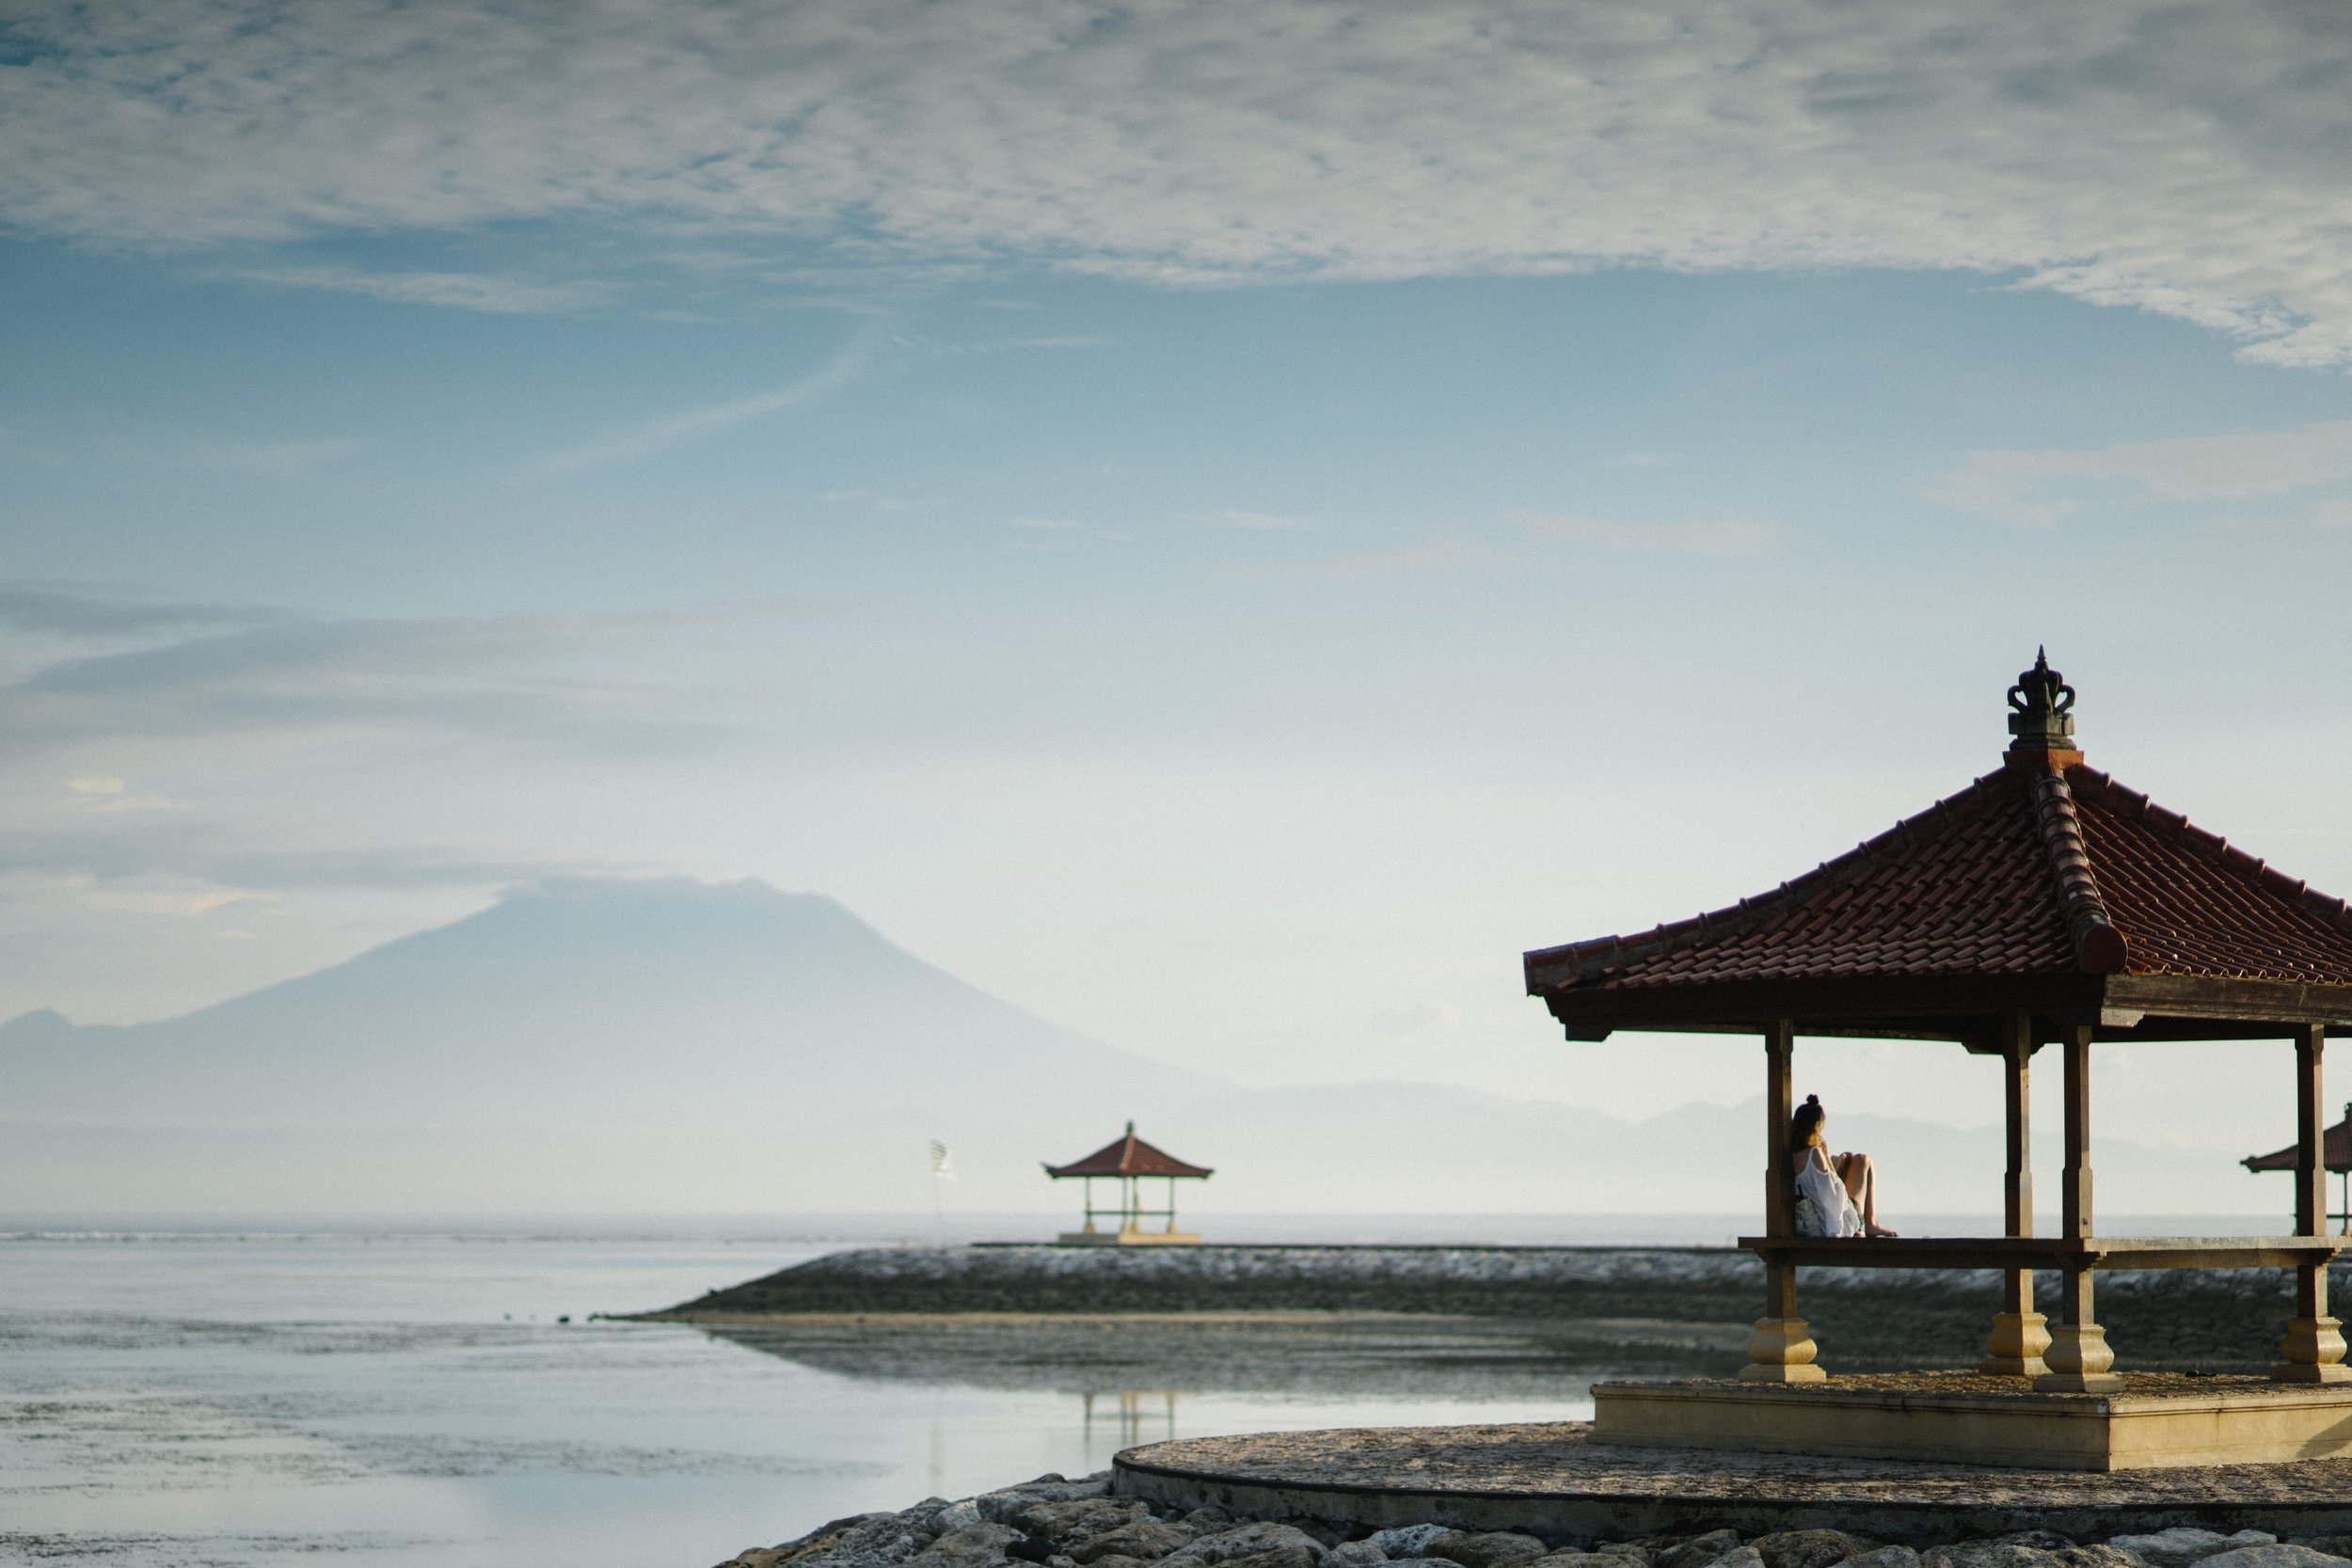 Hotels Resorts In Bali With Best Views The Most Perfect View